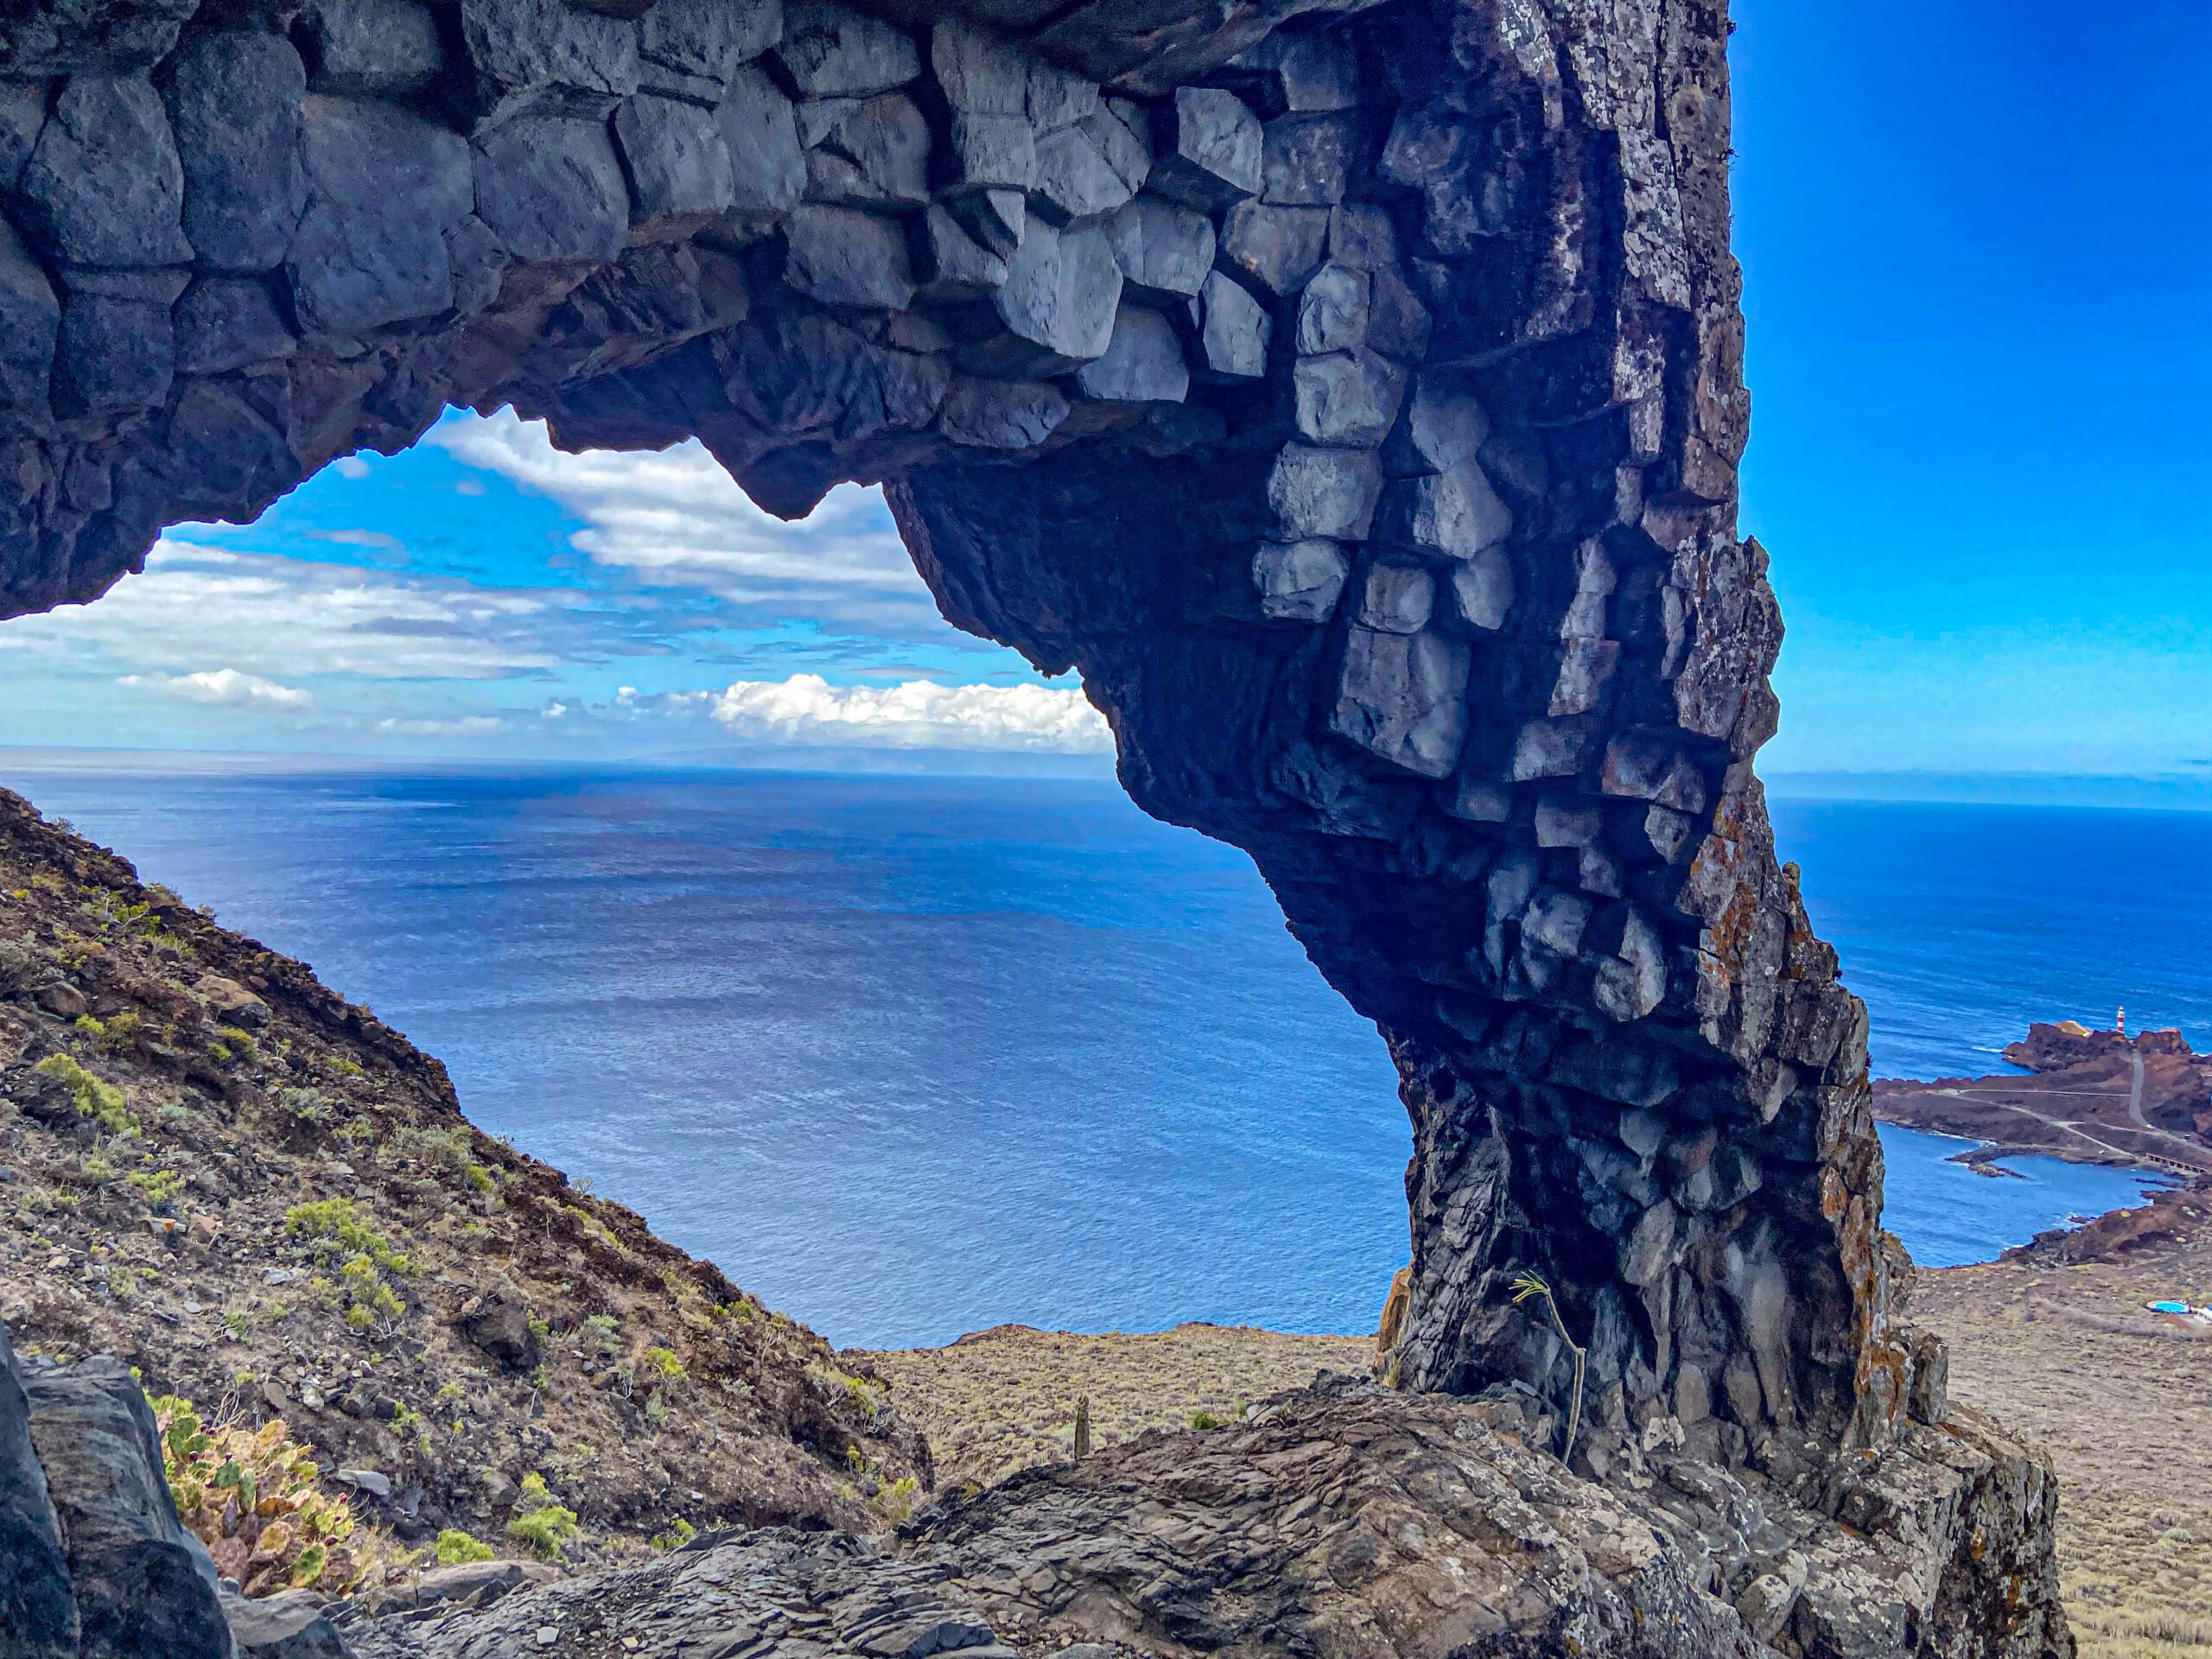 View from the rock gate to Punta Teno